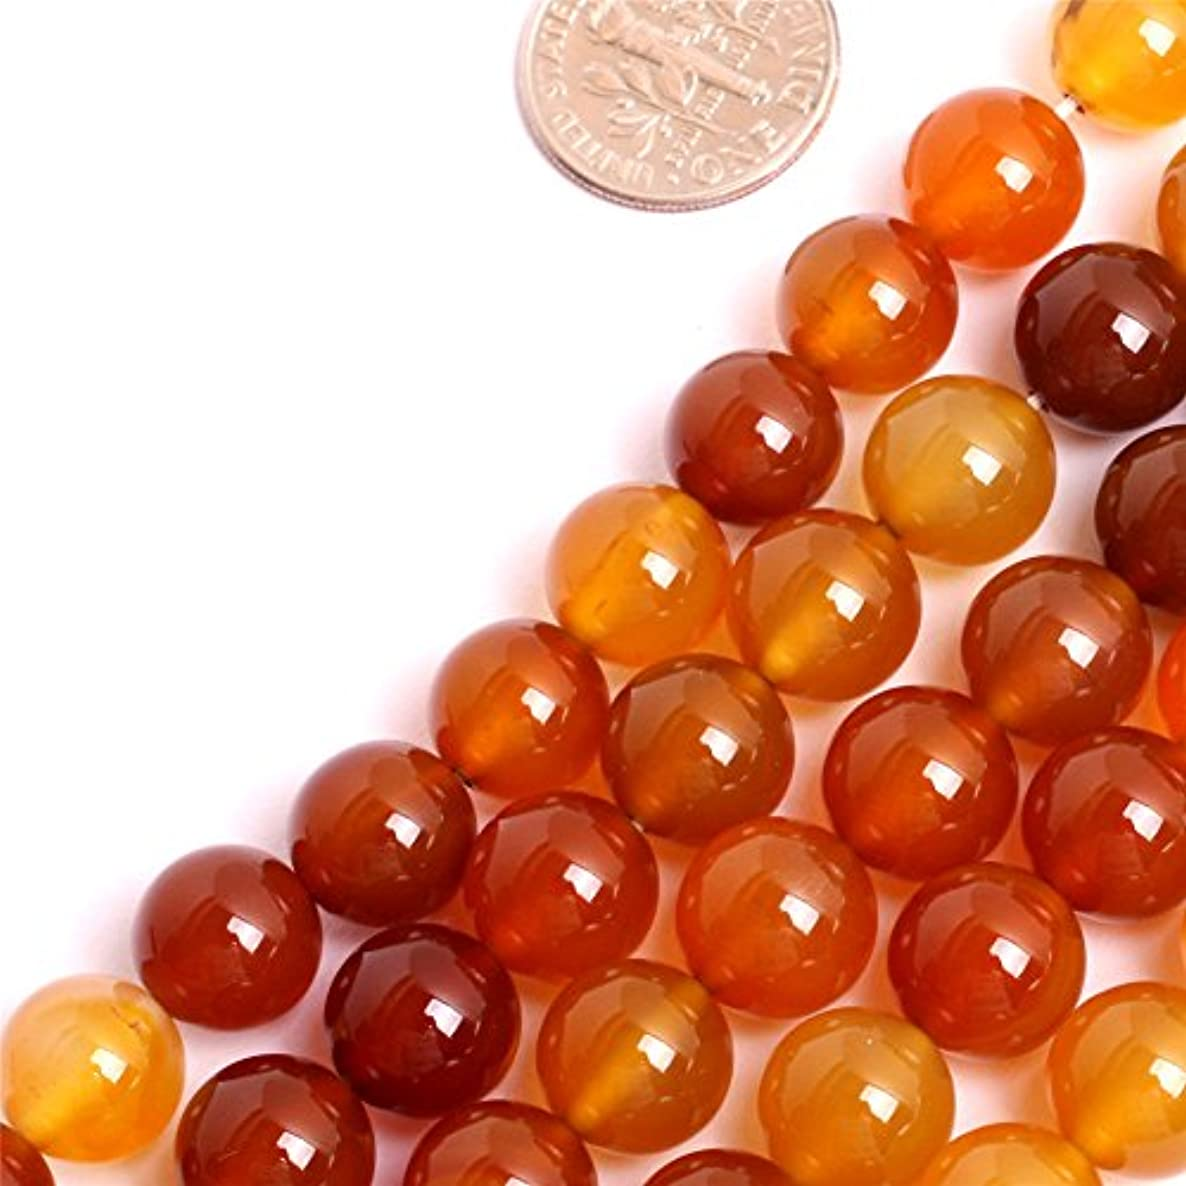 GEM-inside Botswana Agate Gemstone Loose Beads Natural 12mm Round Bronw Crystal Energy Stone Power For Jewelry Making 15